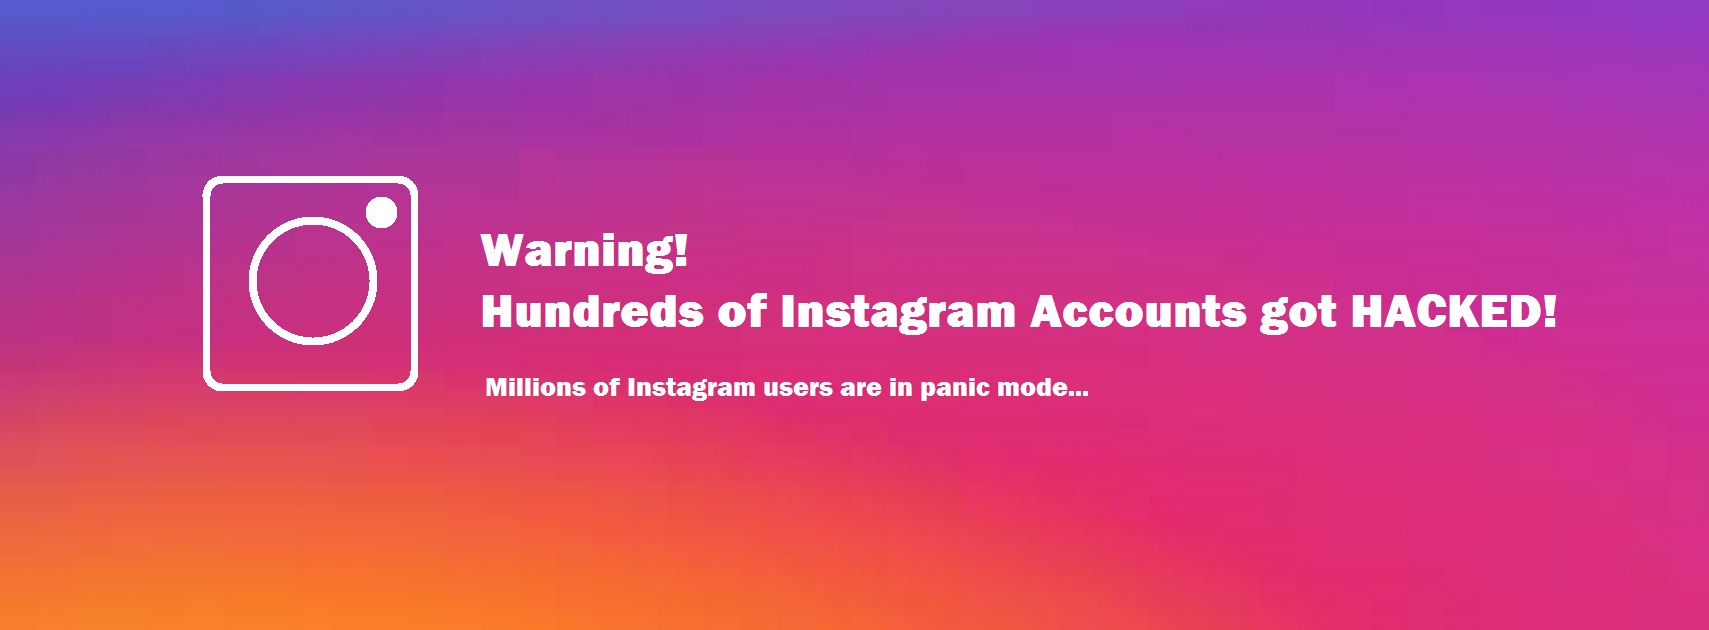 Hackagram: Hundreds of Instagram accounts were taken over by Russian hackers